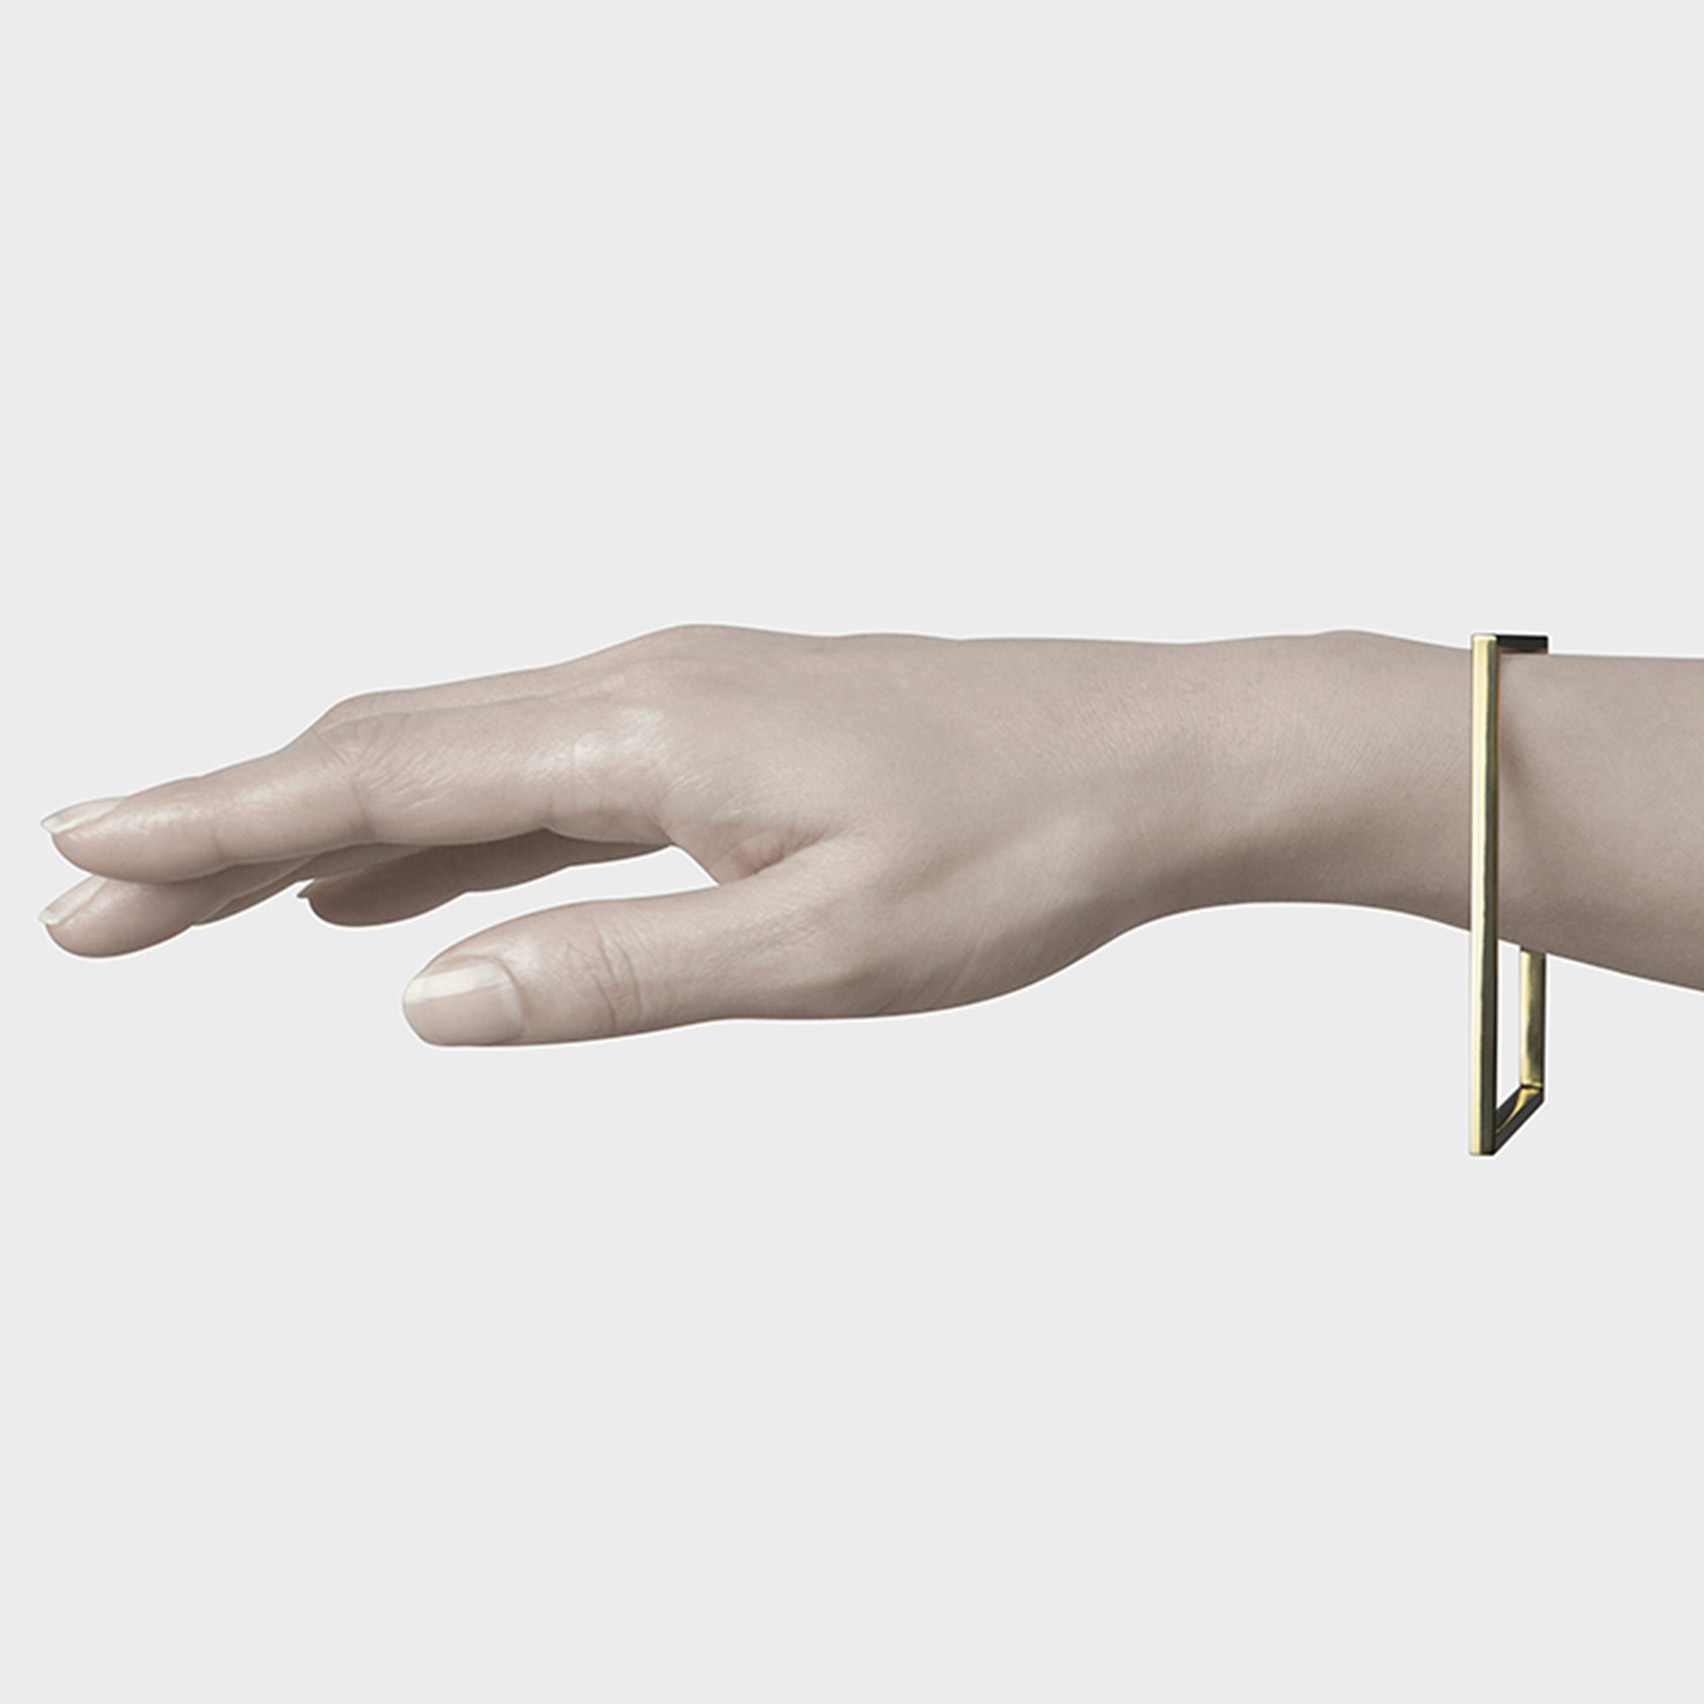 Minimalux launches collection of geometric jewellery